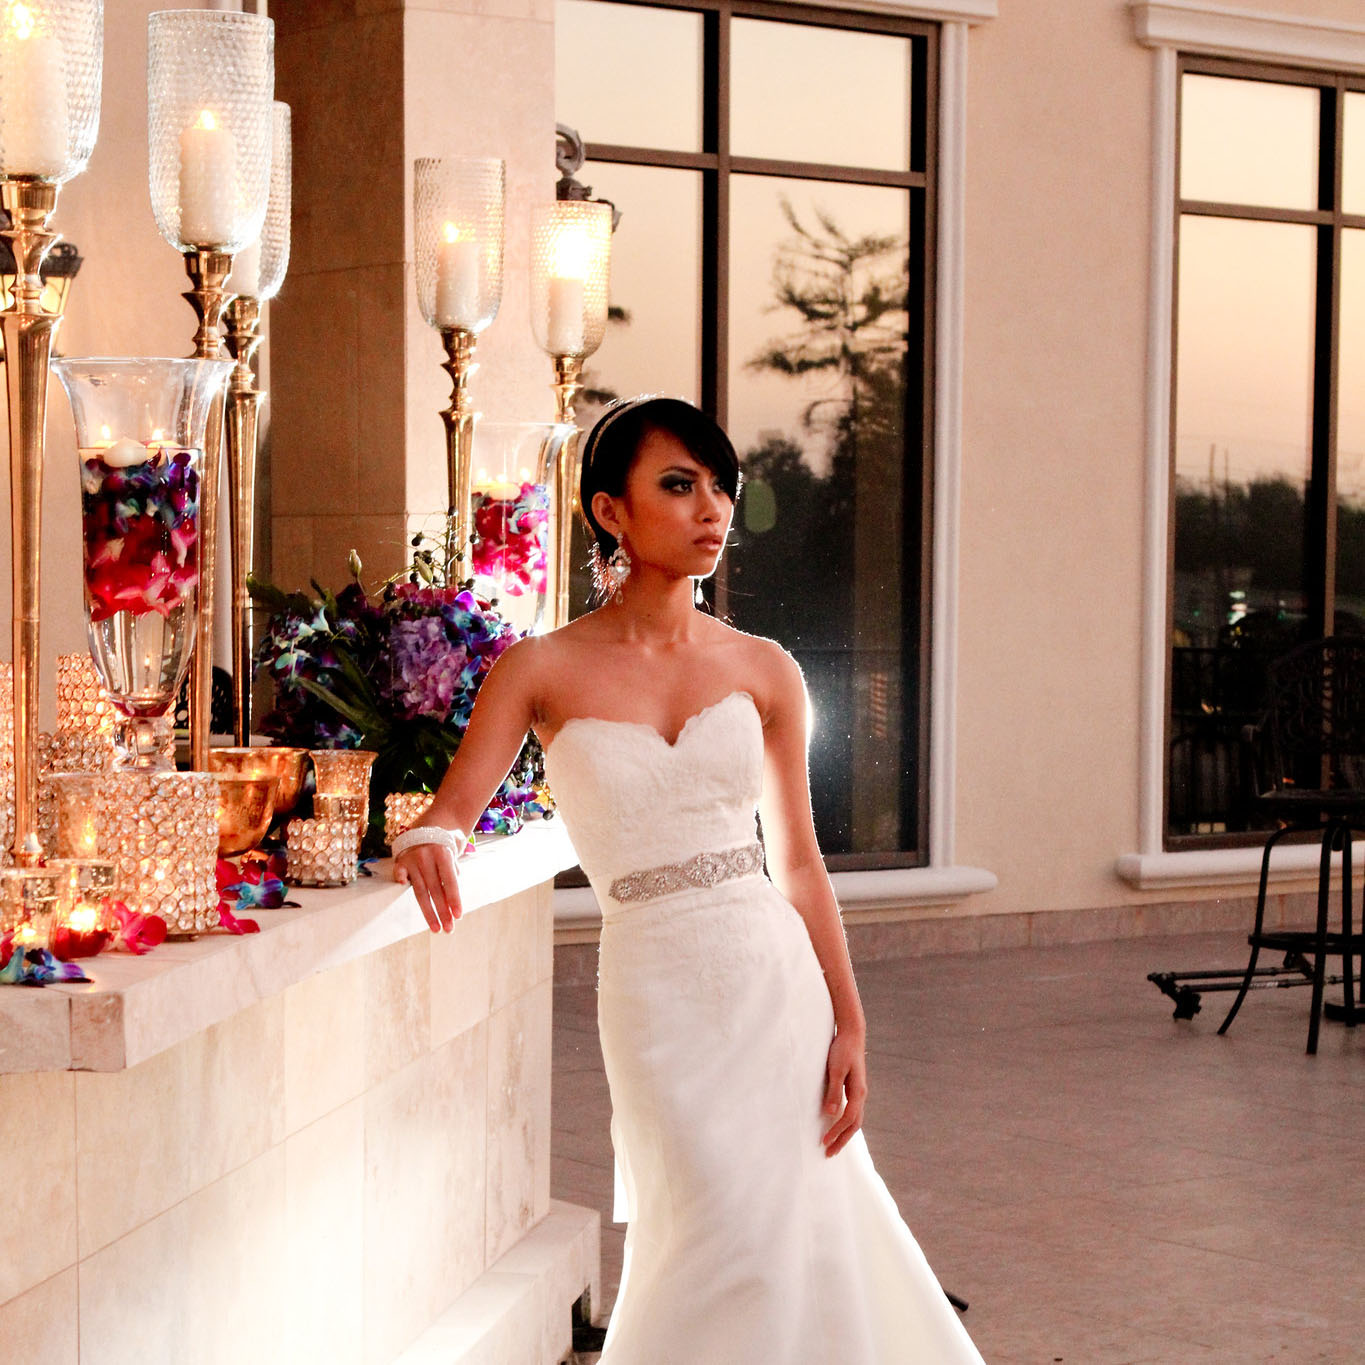 Bride on Royal Palm's terrace. Photo: Jessica The Photographer